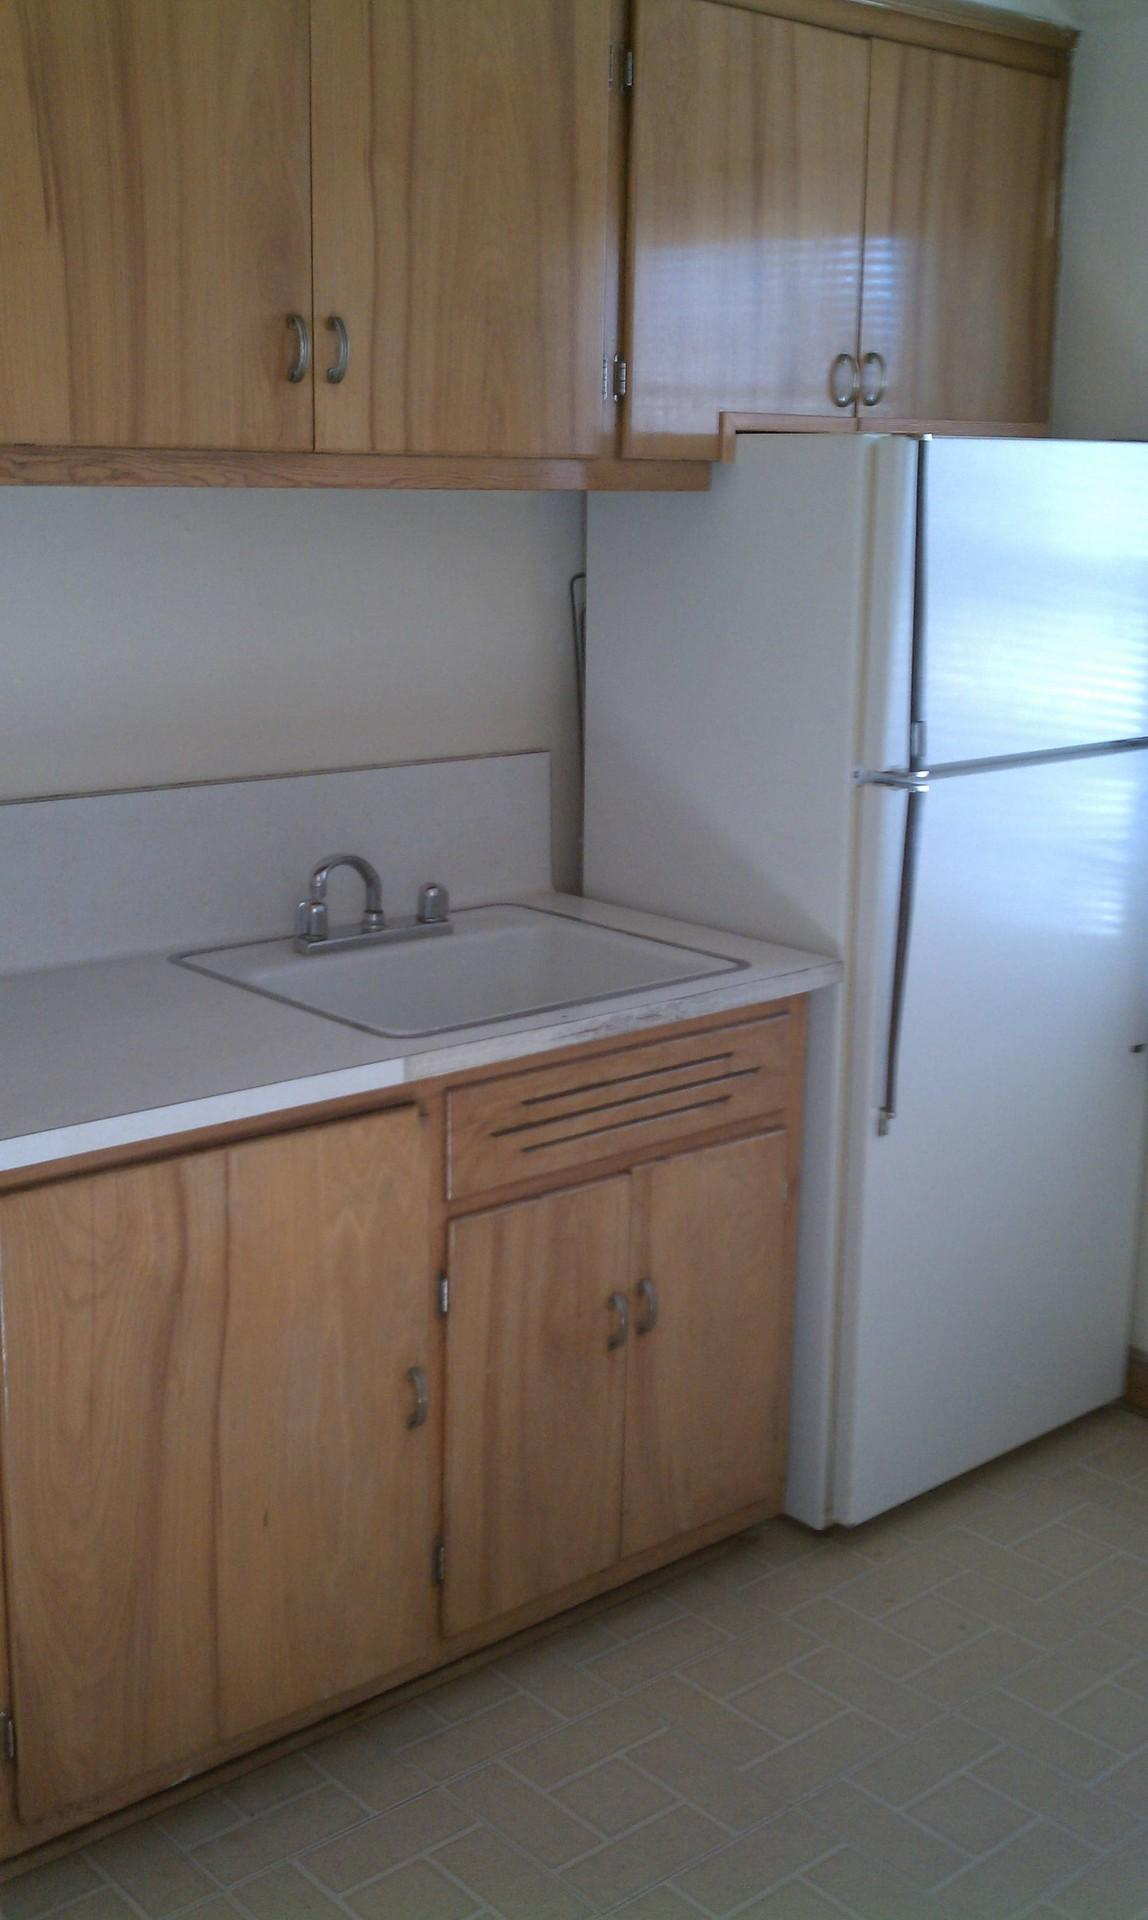 Milwaukee - superb Apartment nearby fine dining. $725/mo